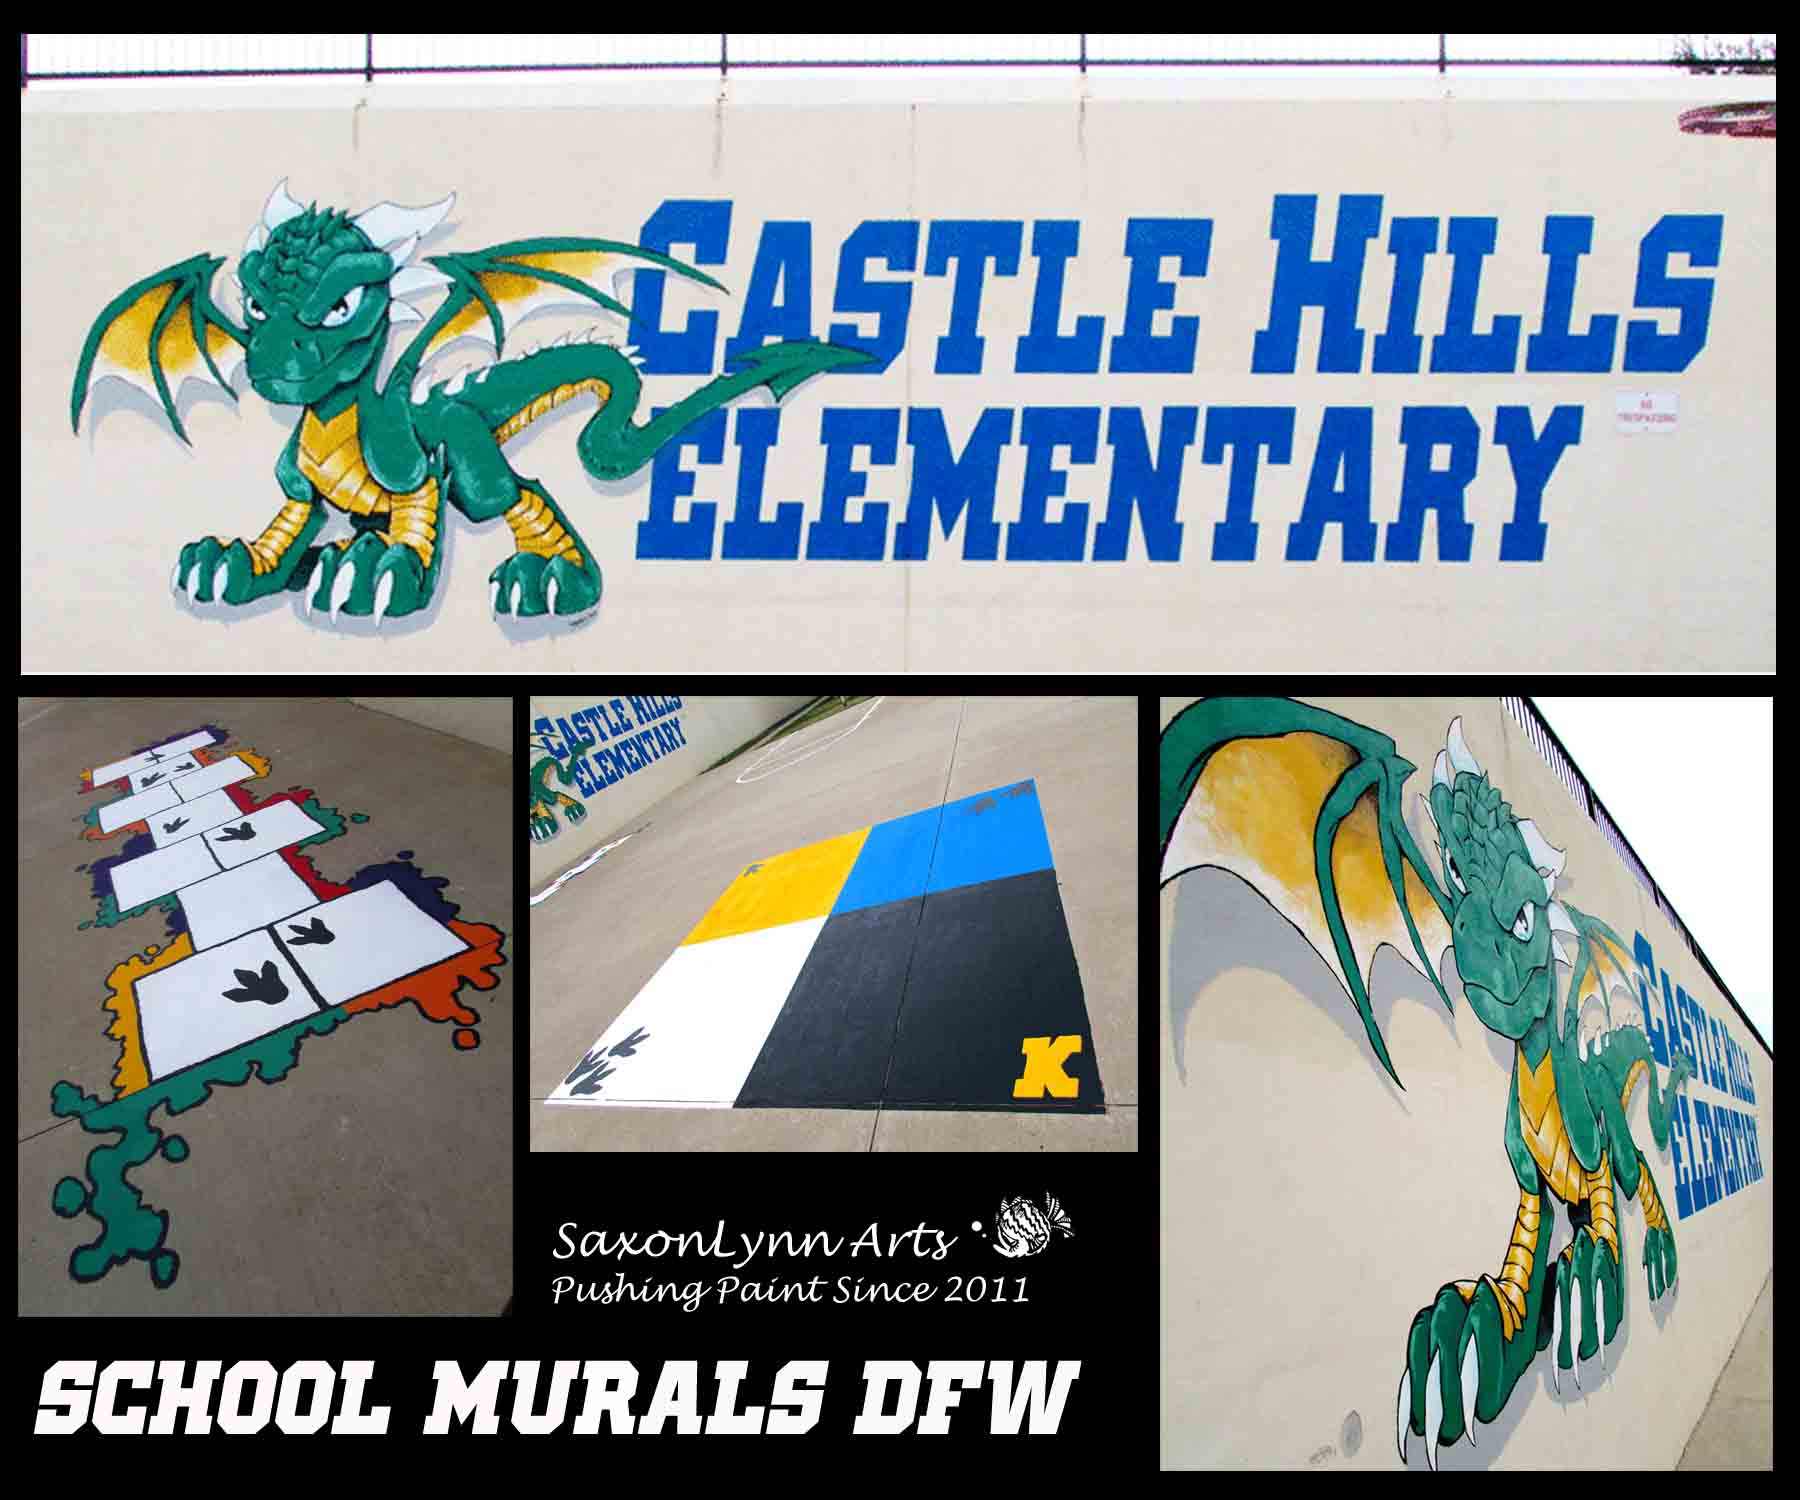 Castle Hills Elementary Logo & Mural painting, Hopscotch, 4 Square